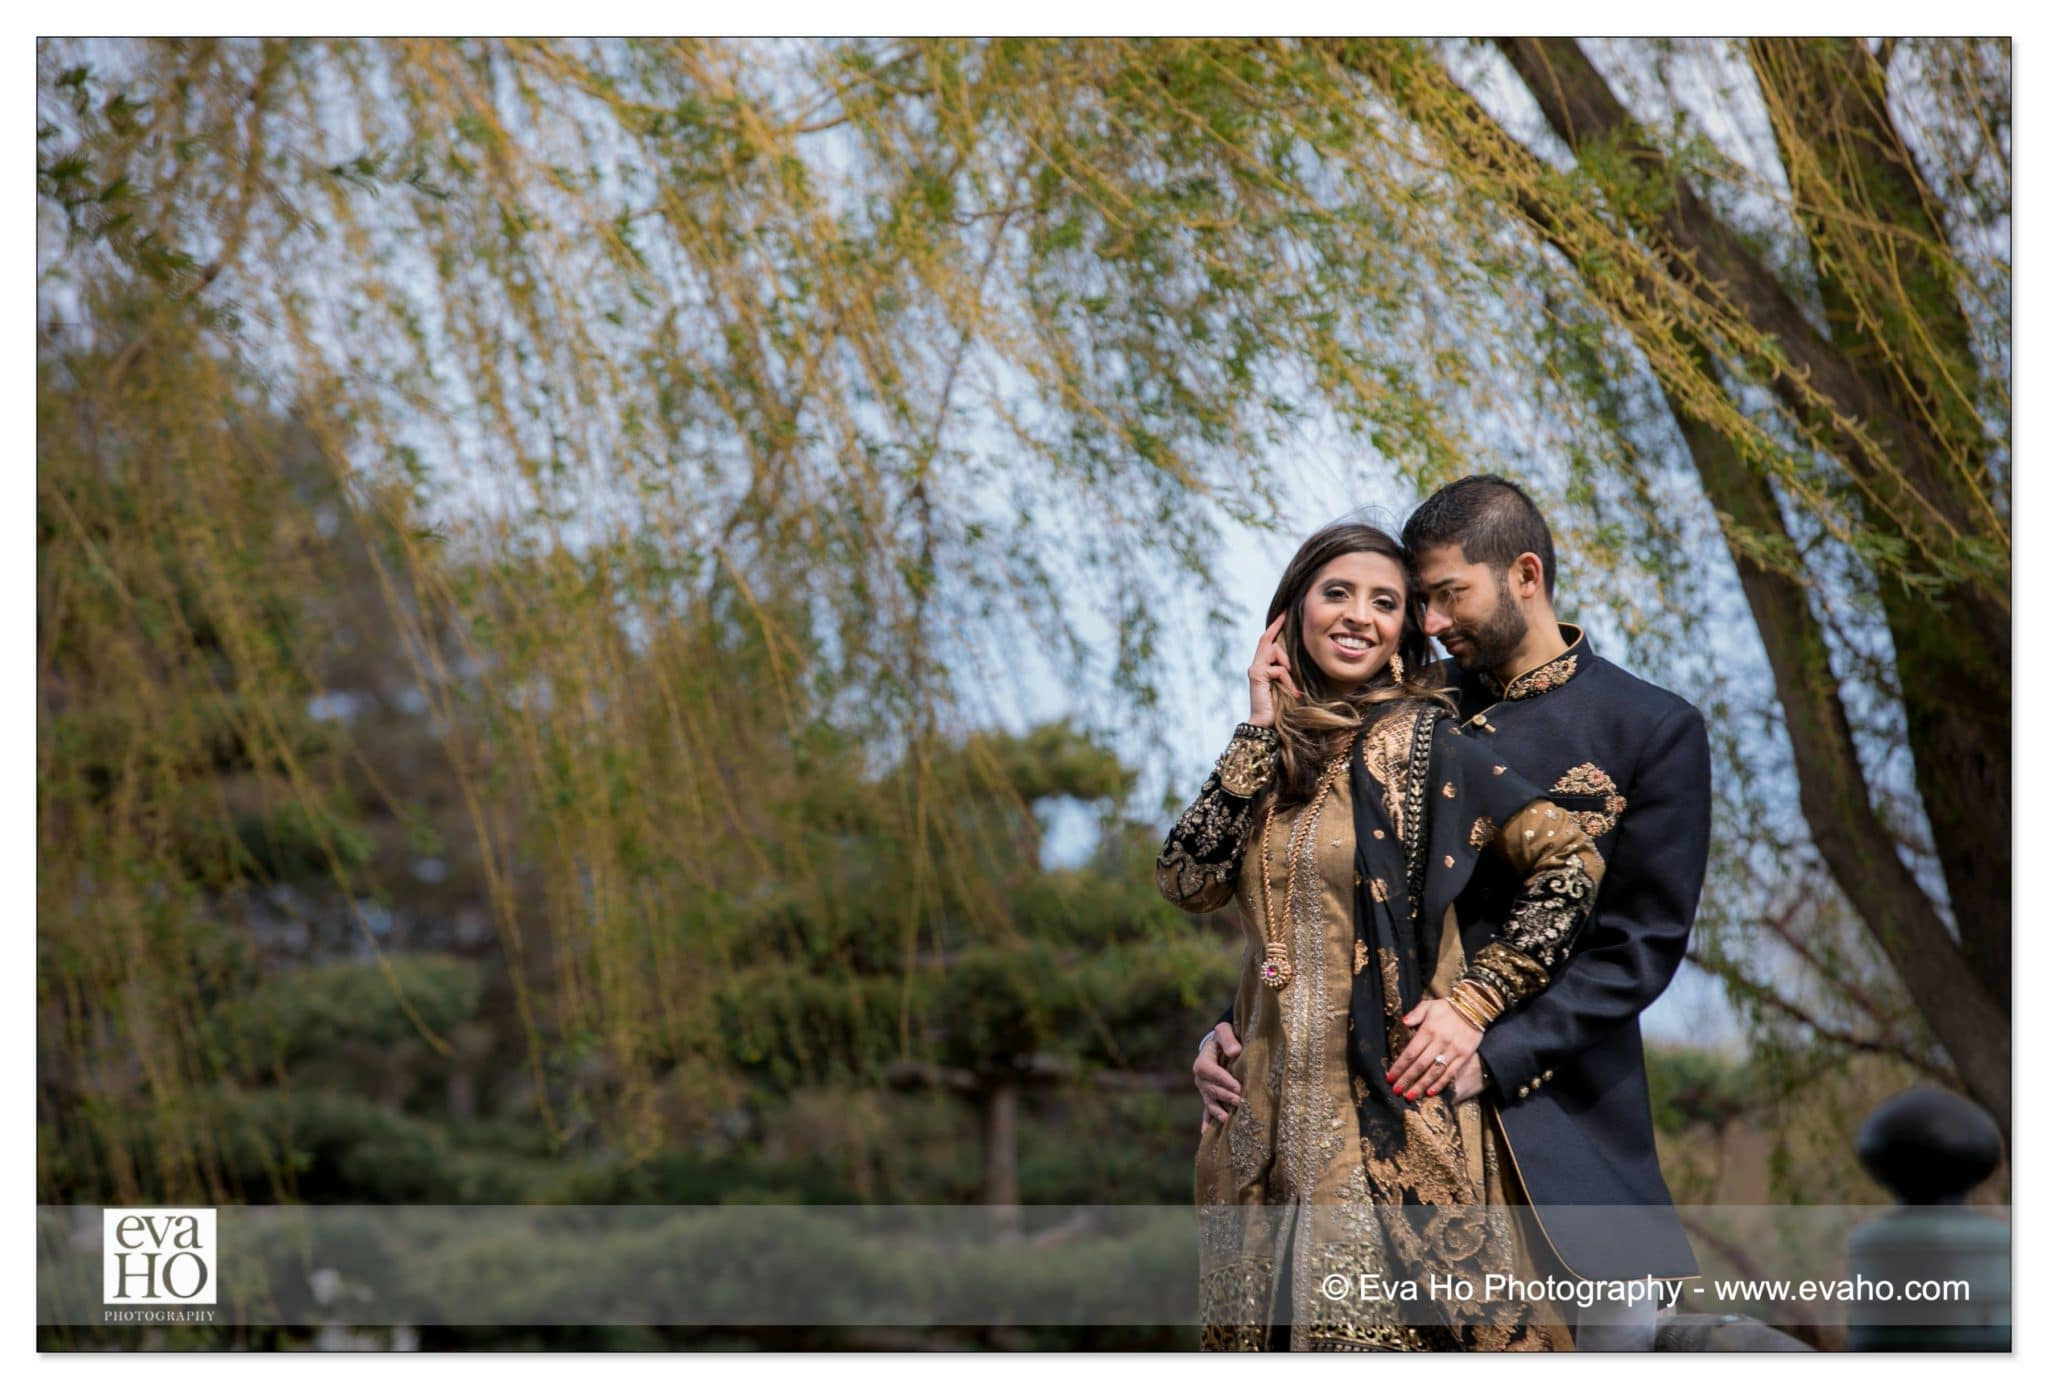 Nidah and Z in their traditional Pakistani outfit under the willow trees.